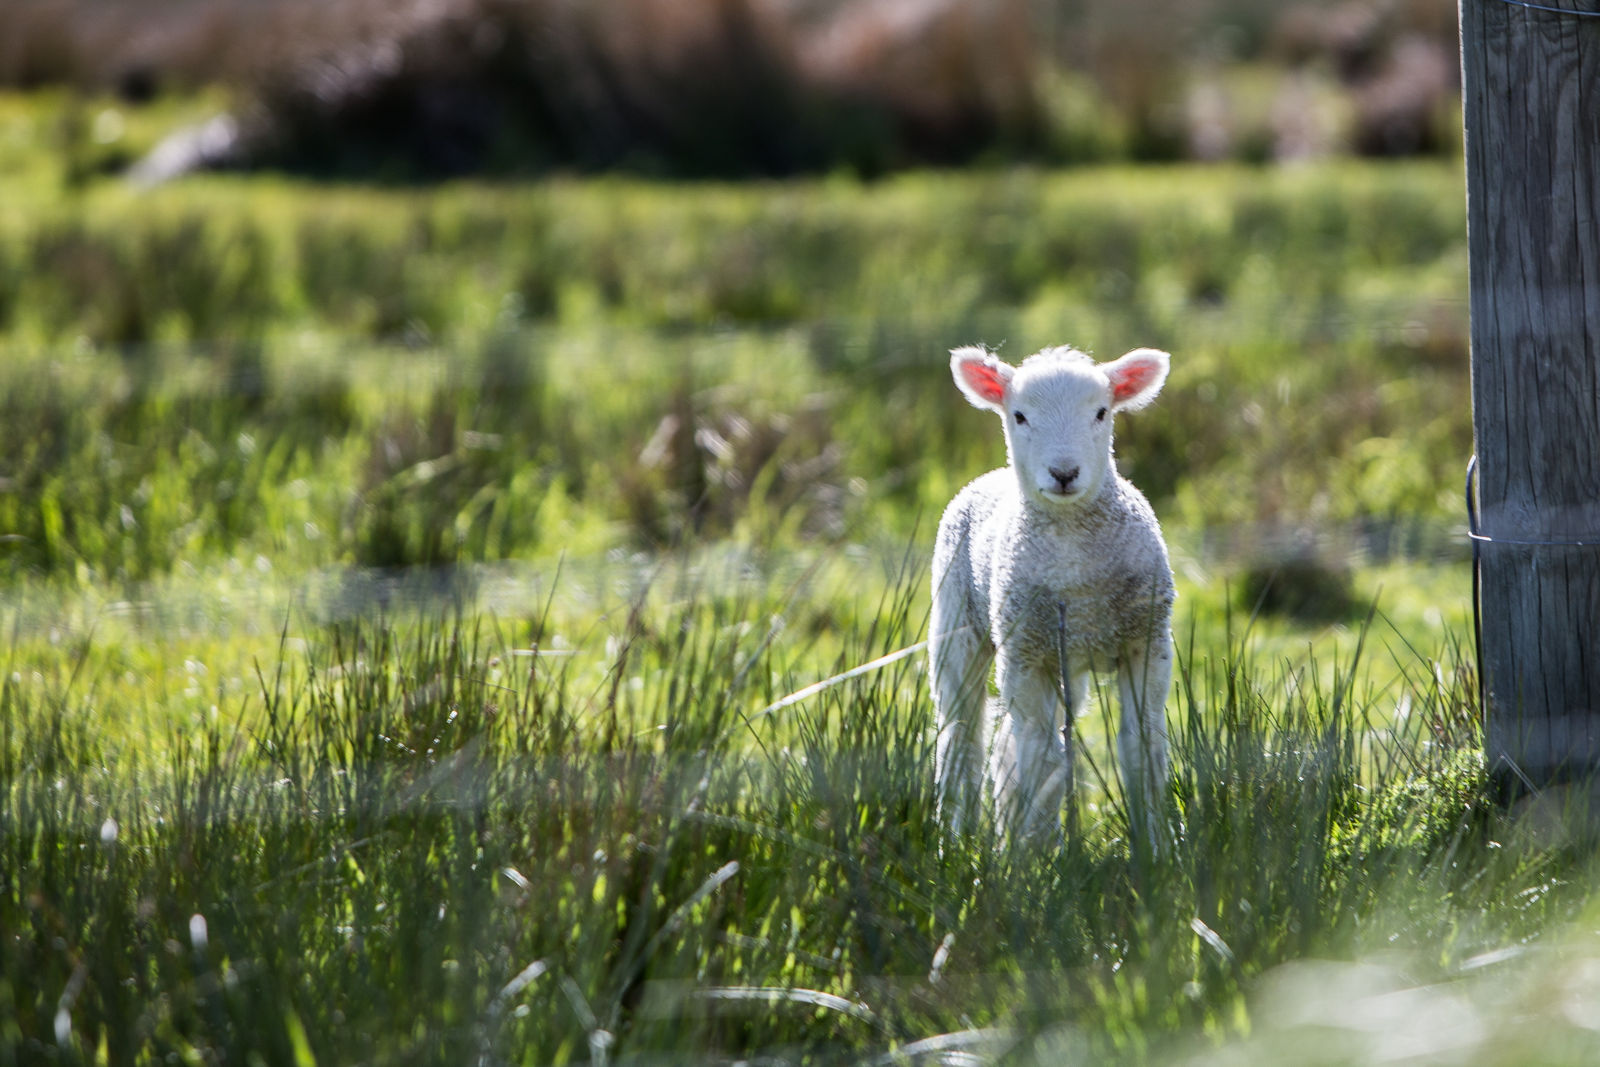 Leviticus 14:12: Take the one male lamb